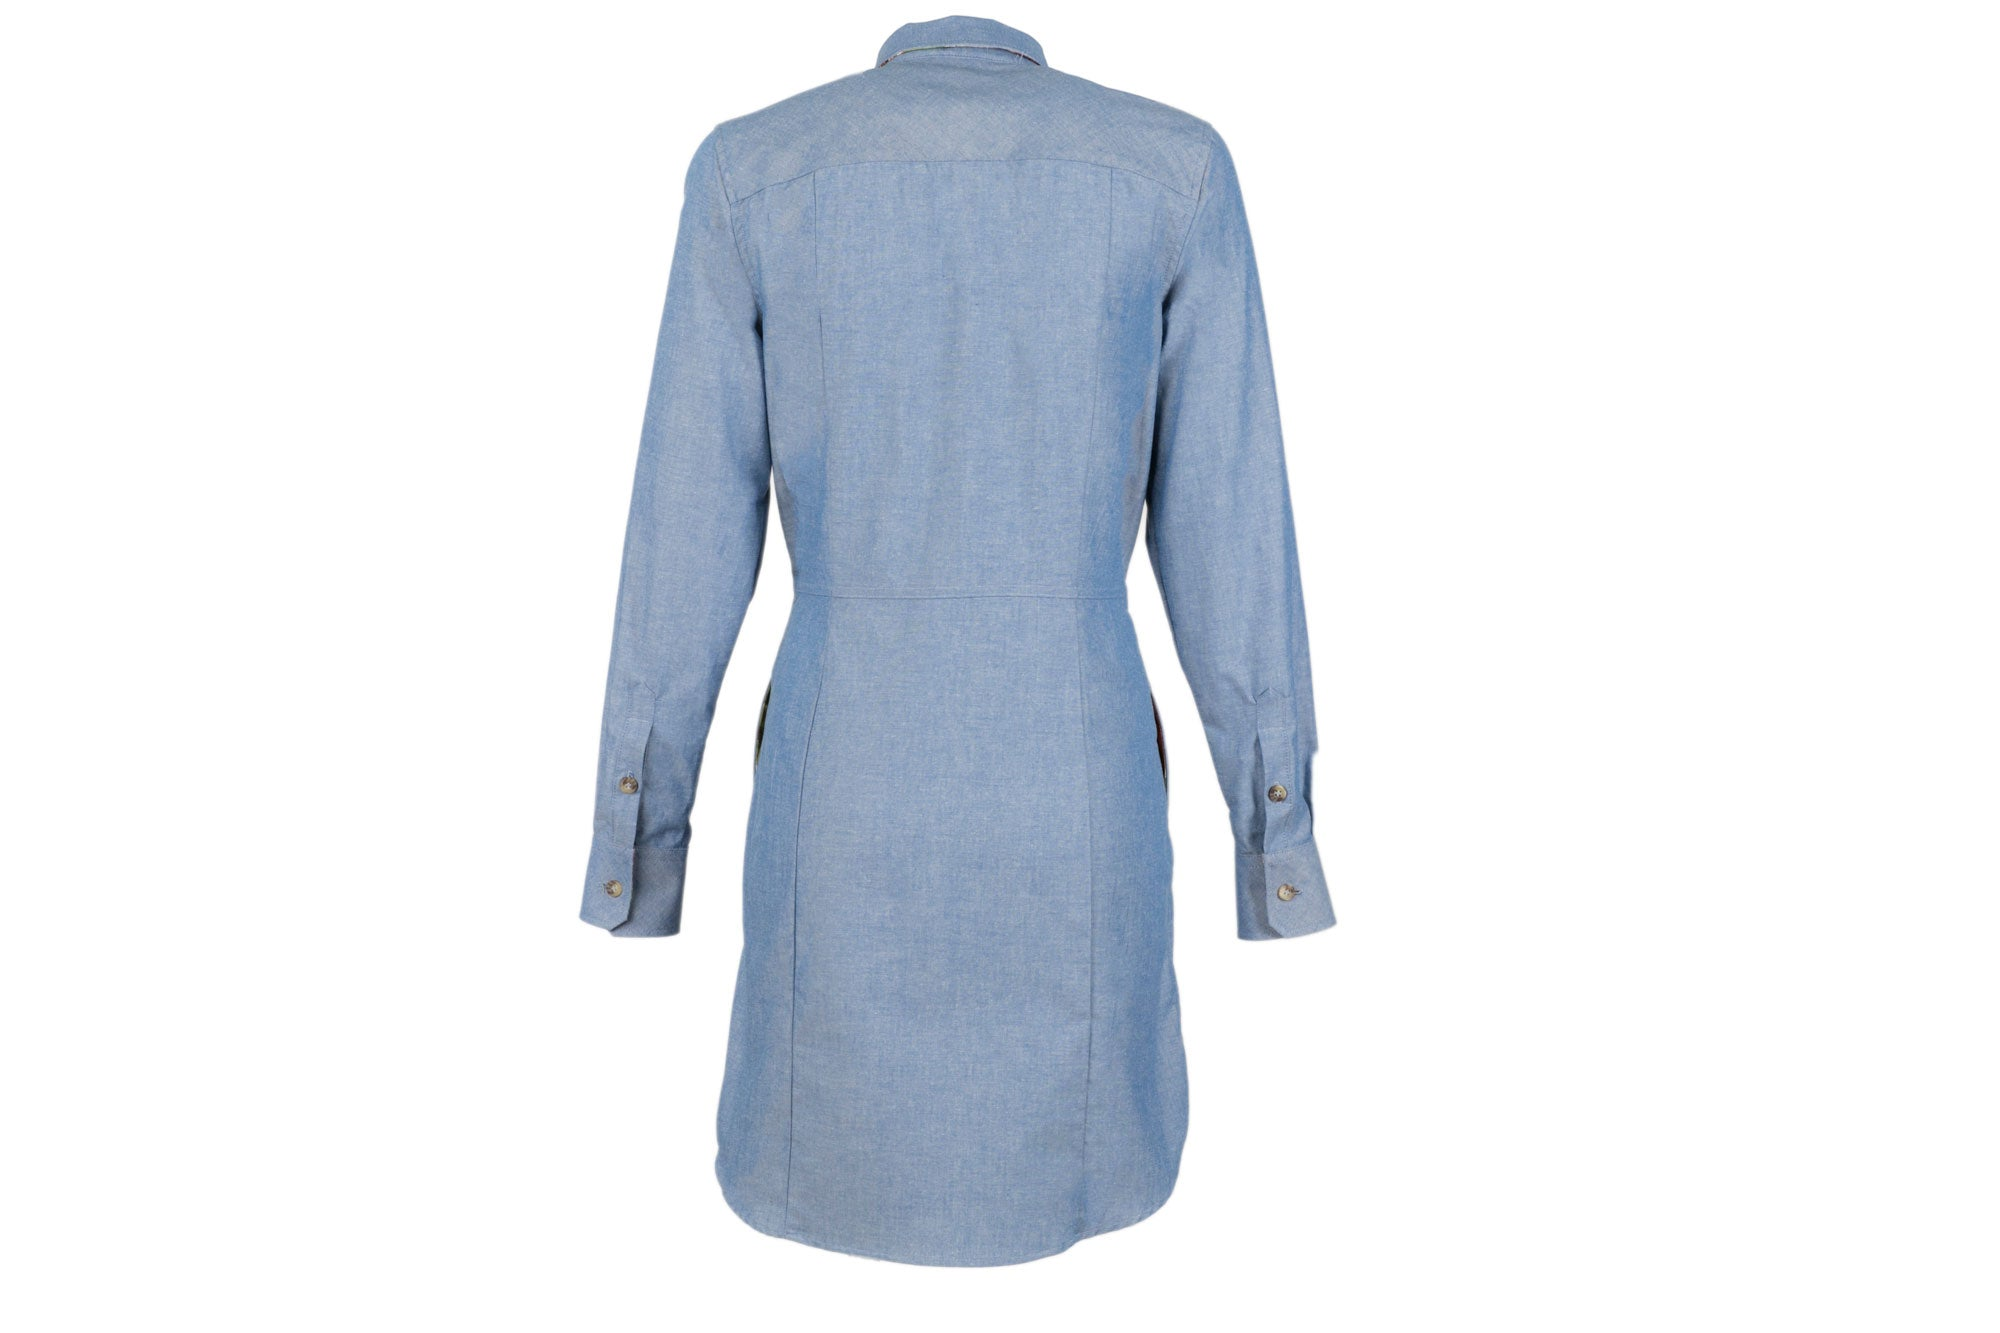 Women's Dress - Moonshine Blue Chambray